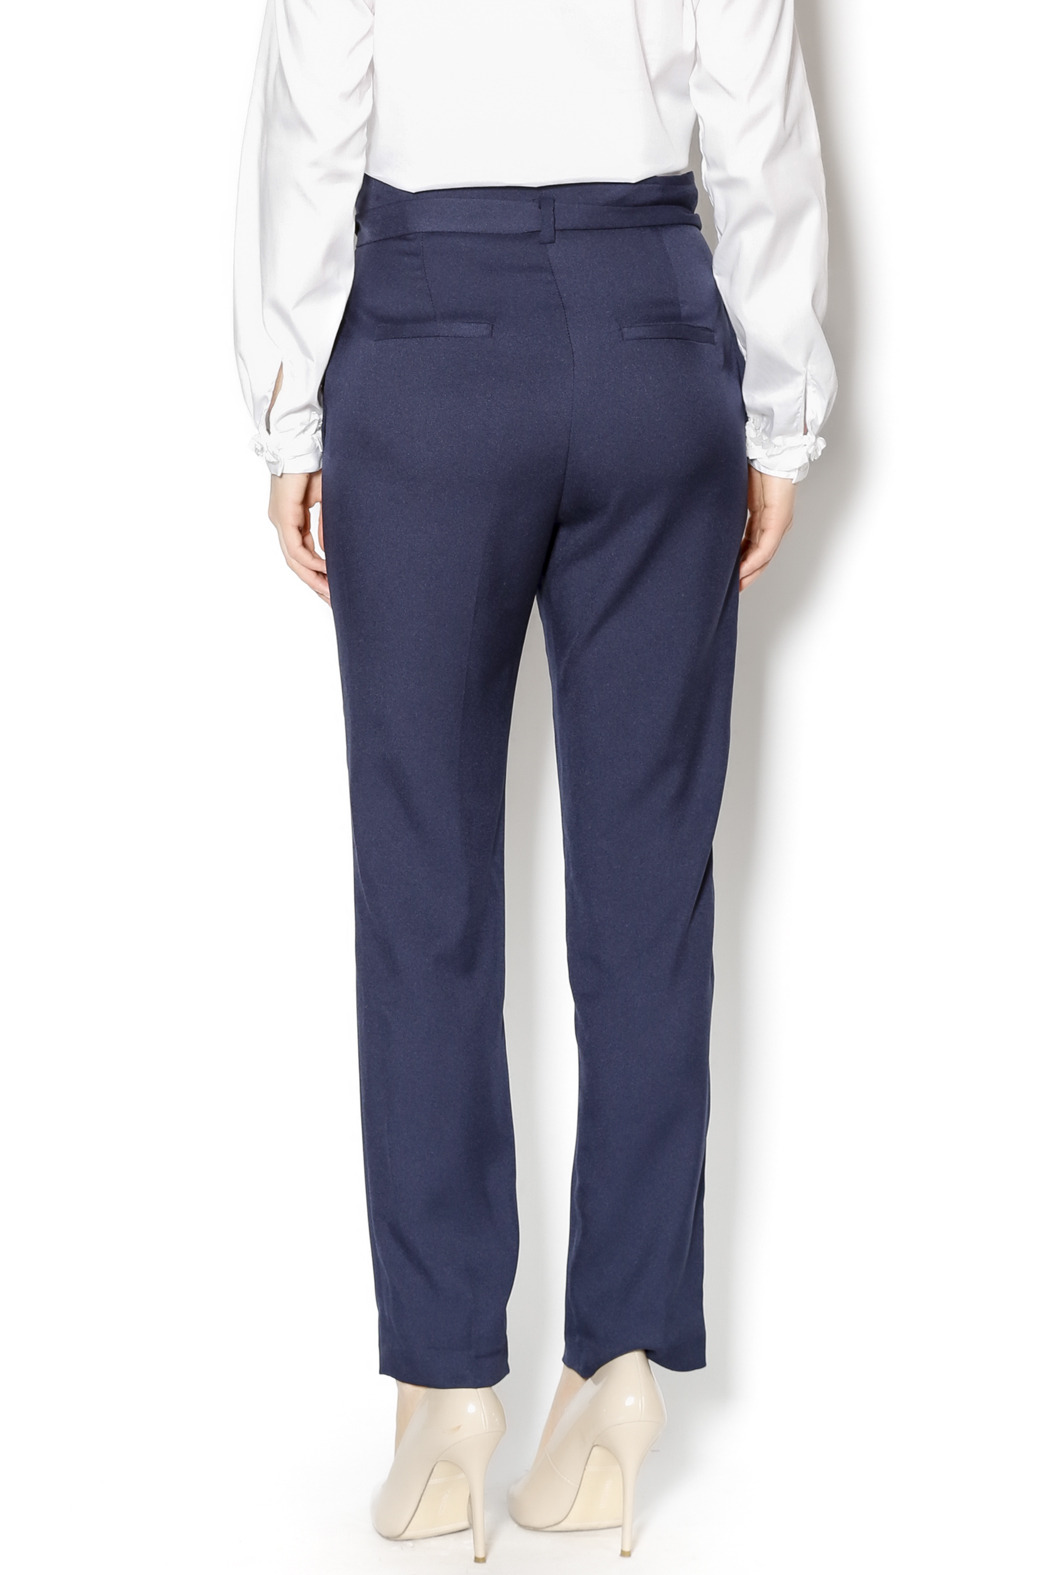 Pinkyotto Navy High Waisted Tie Pants - Back Cropped Image